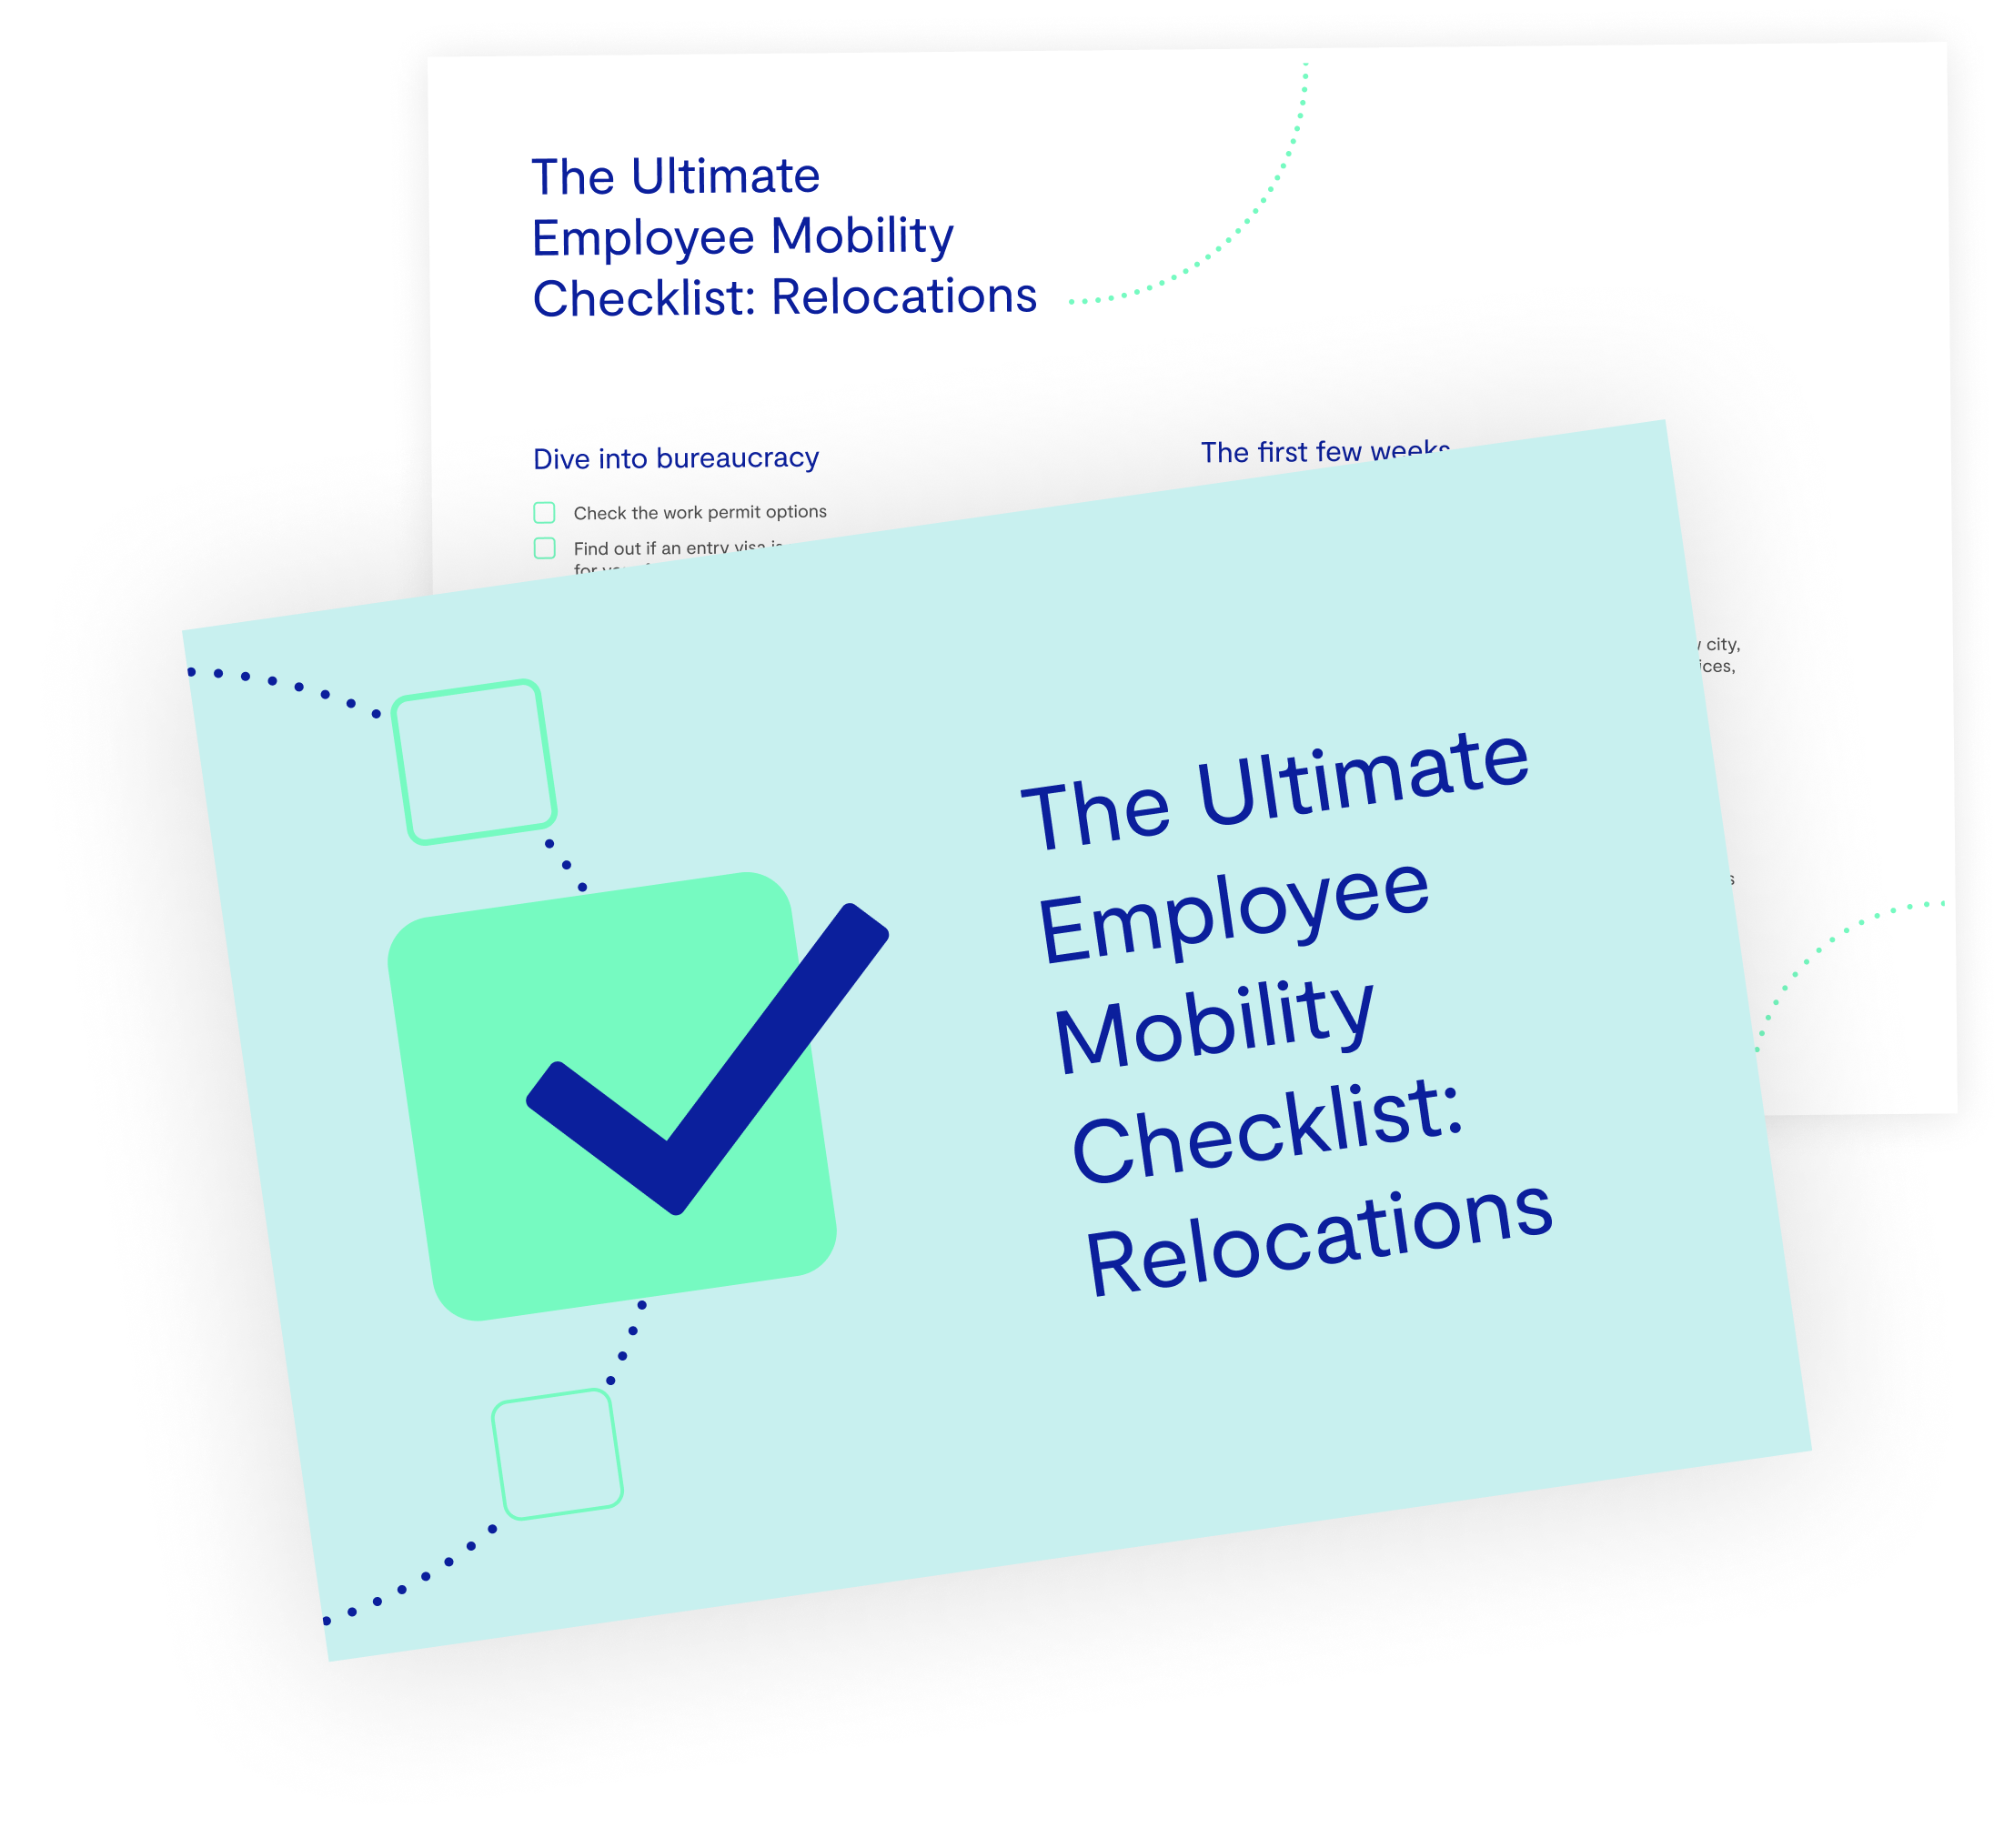 The Ultimate Employee Mobility Checklist: Relocations